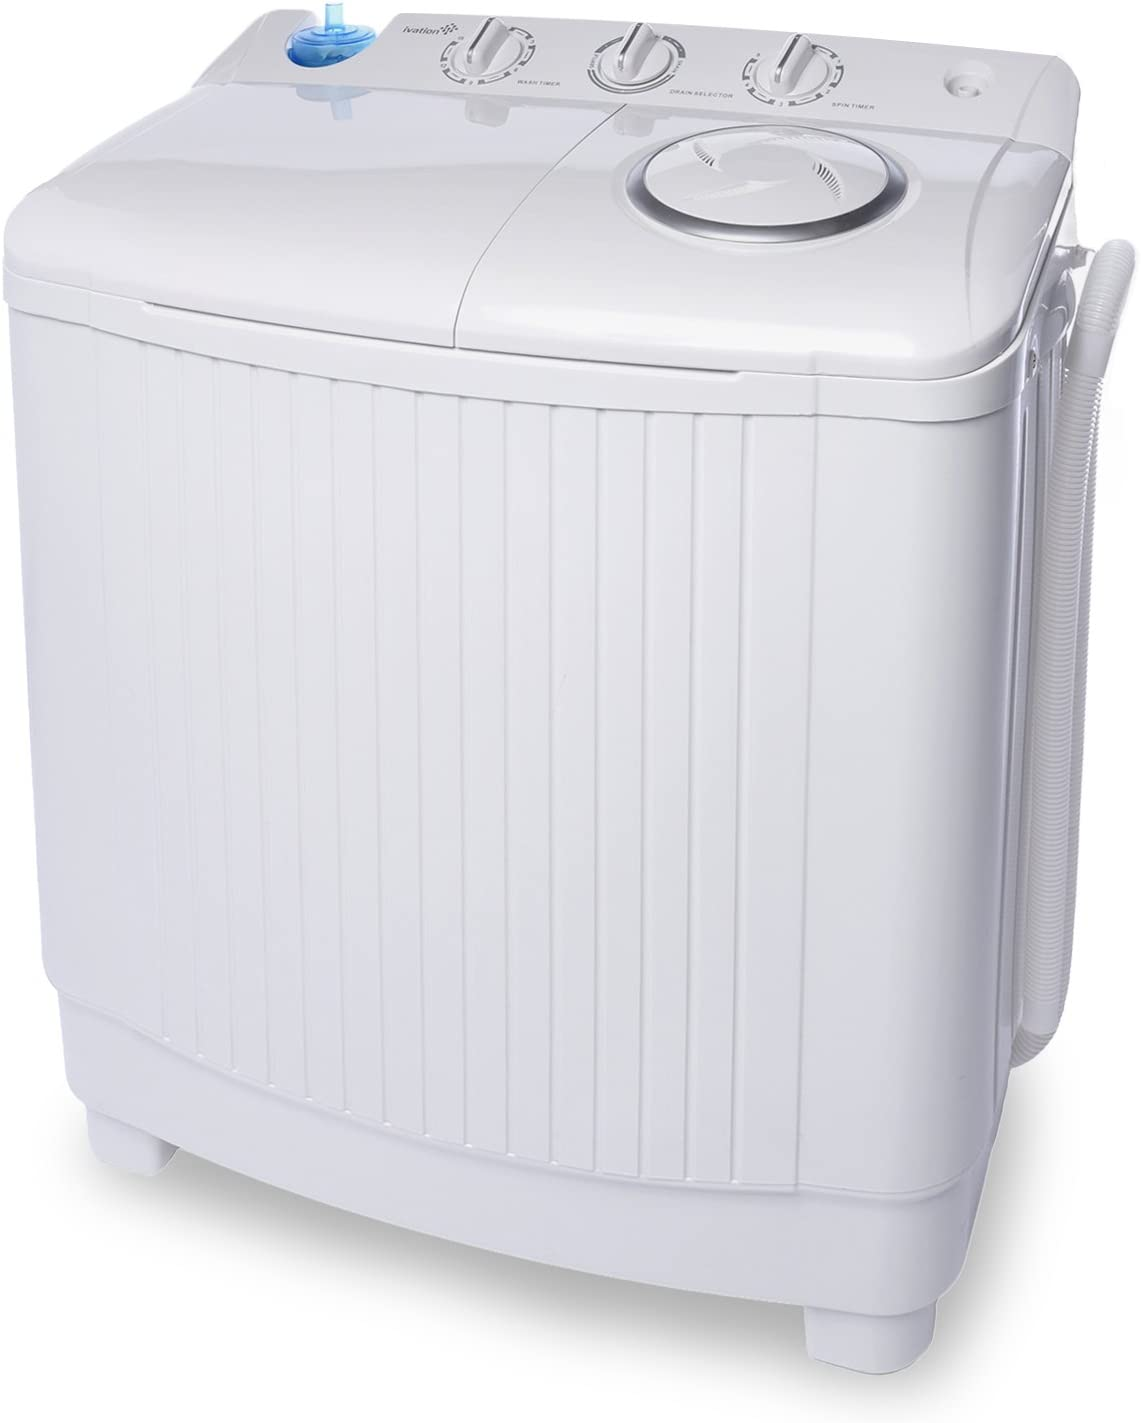 Top 10 Best Portable Washing Machines Reviews in 2020 9